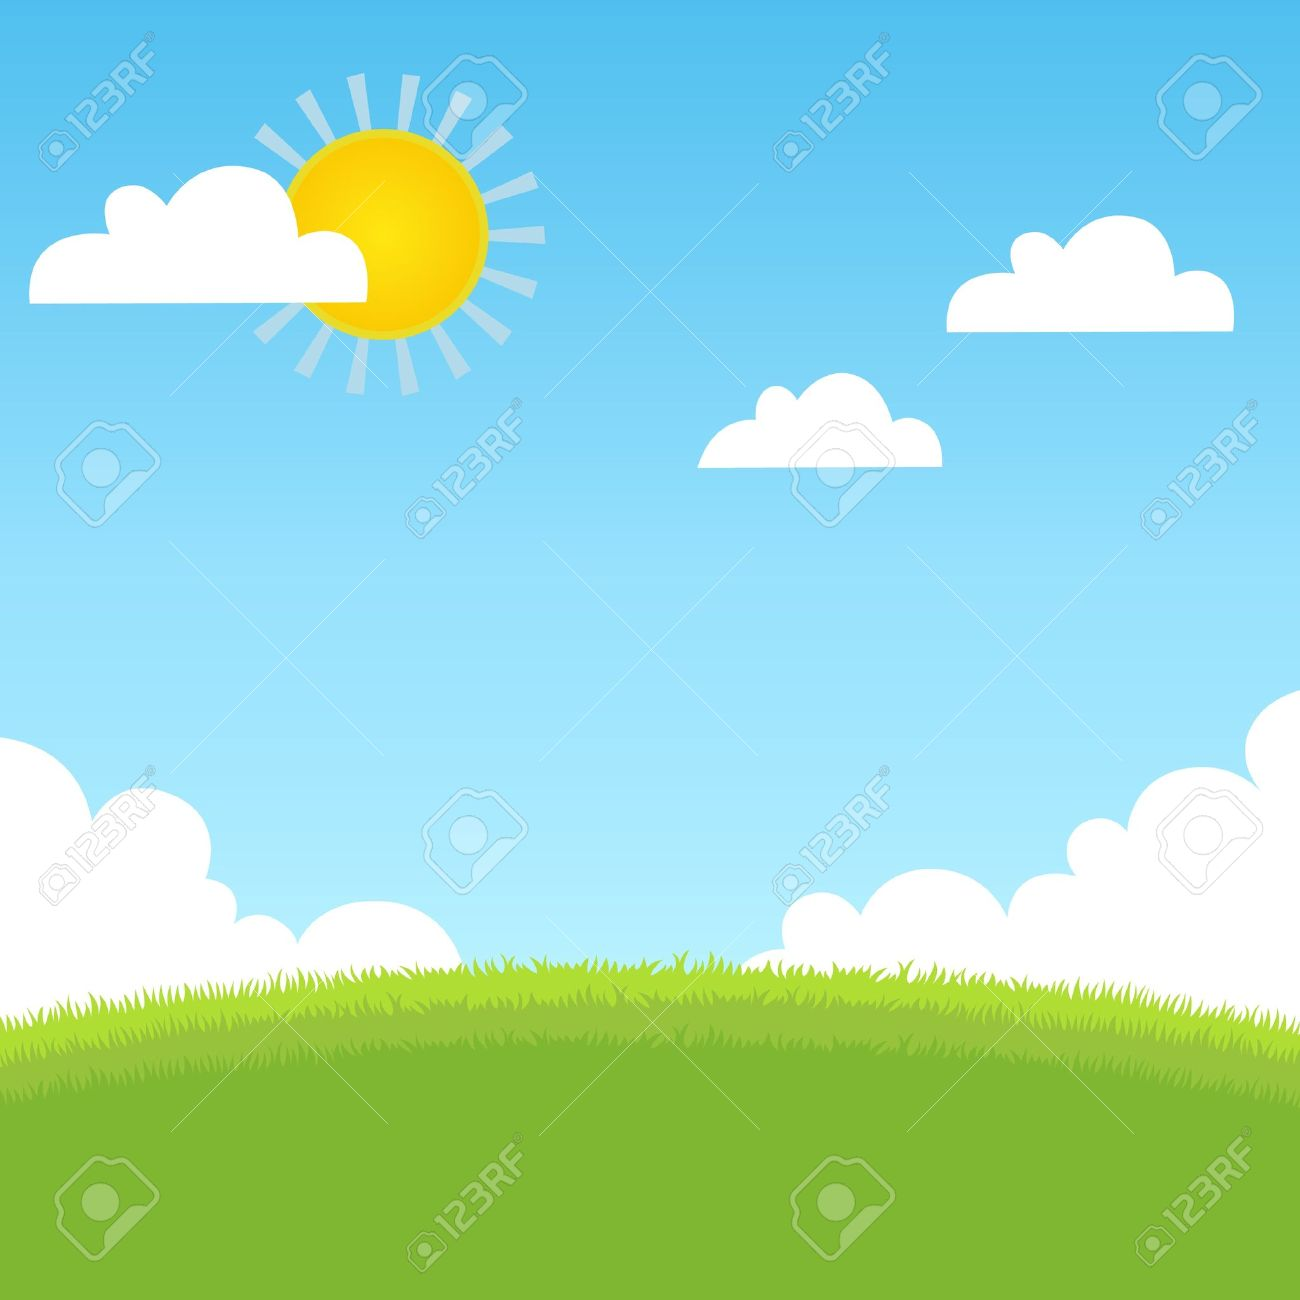 Sun And Sky Clipart.